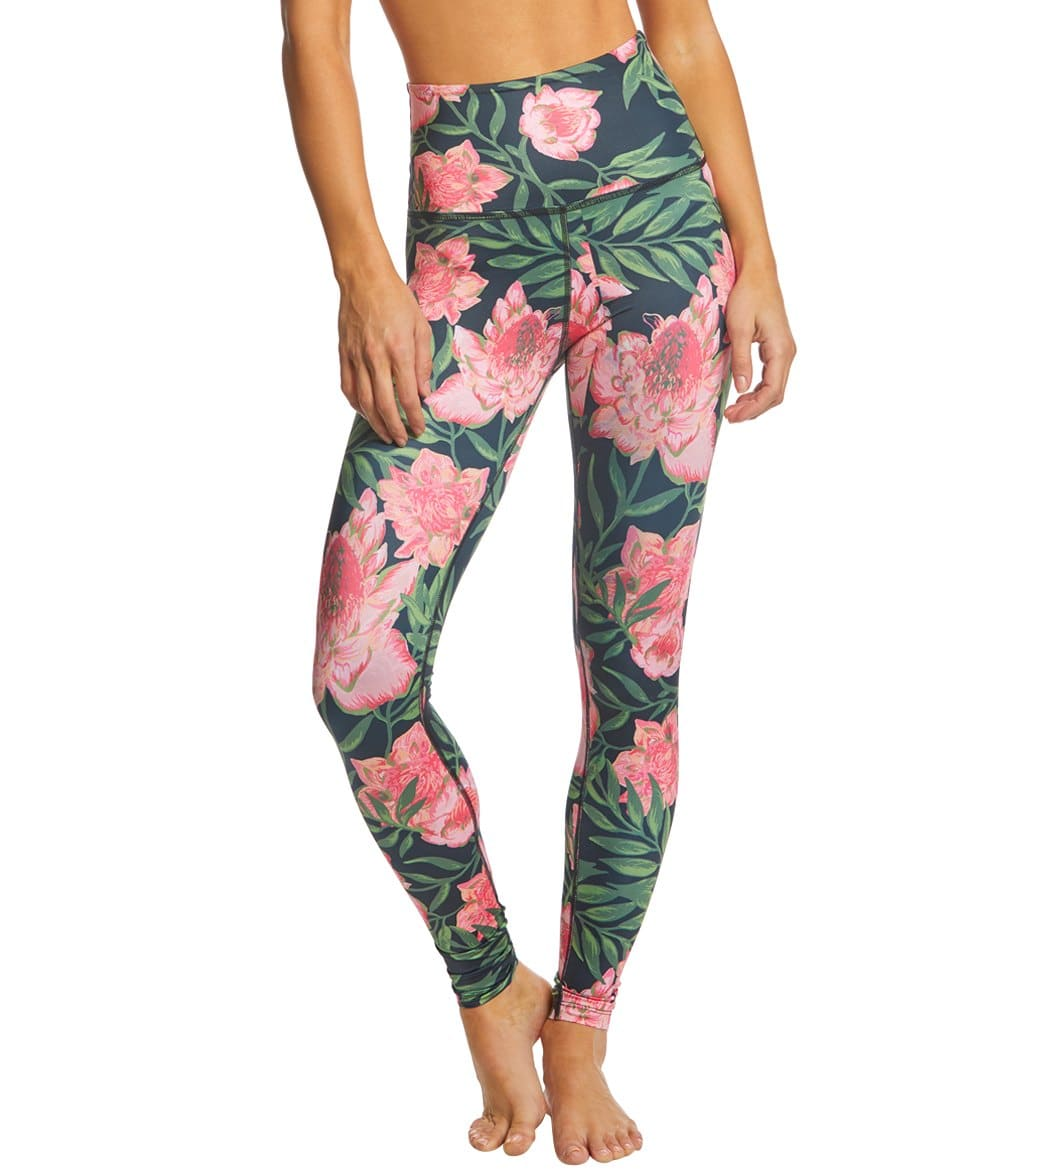 6f021c5f79dac6 Beyond Yoga Lux Printed High Waisted Yoga Leggings at SwimOutlet.com - Free  Shipping